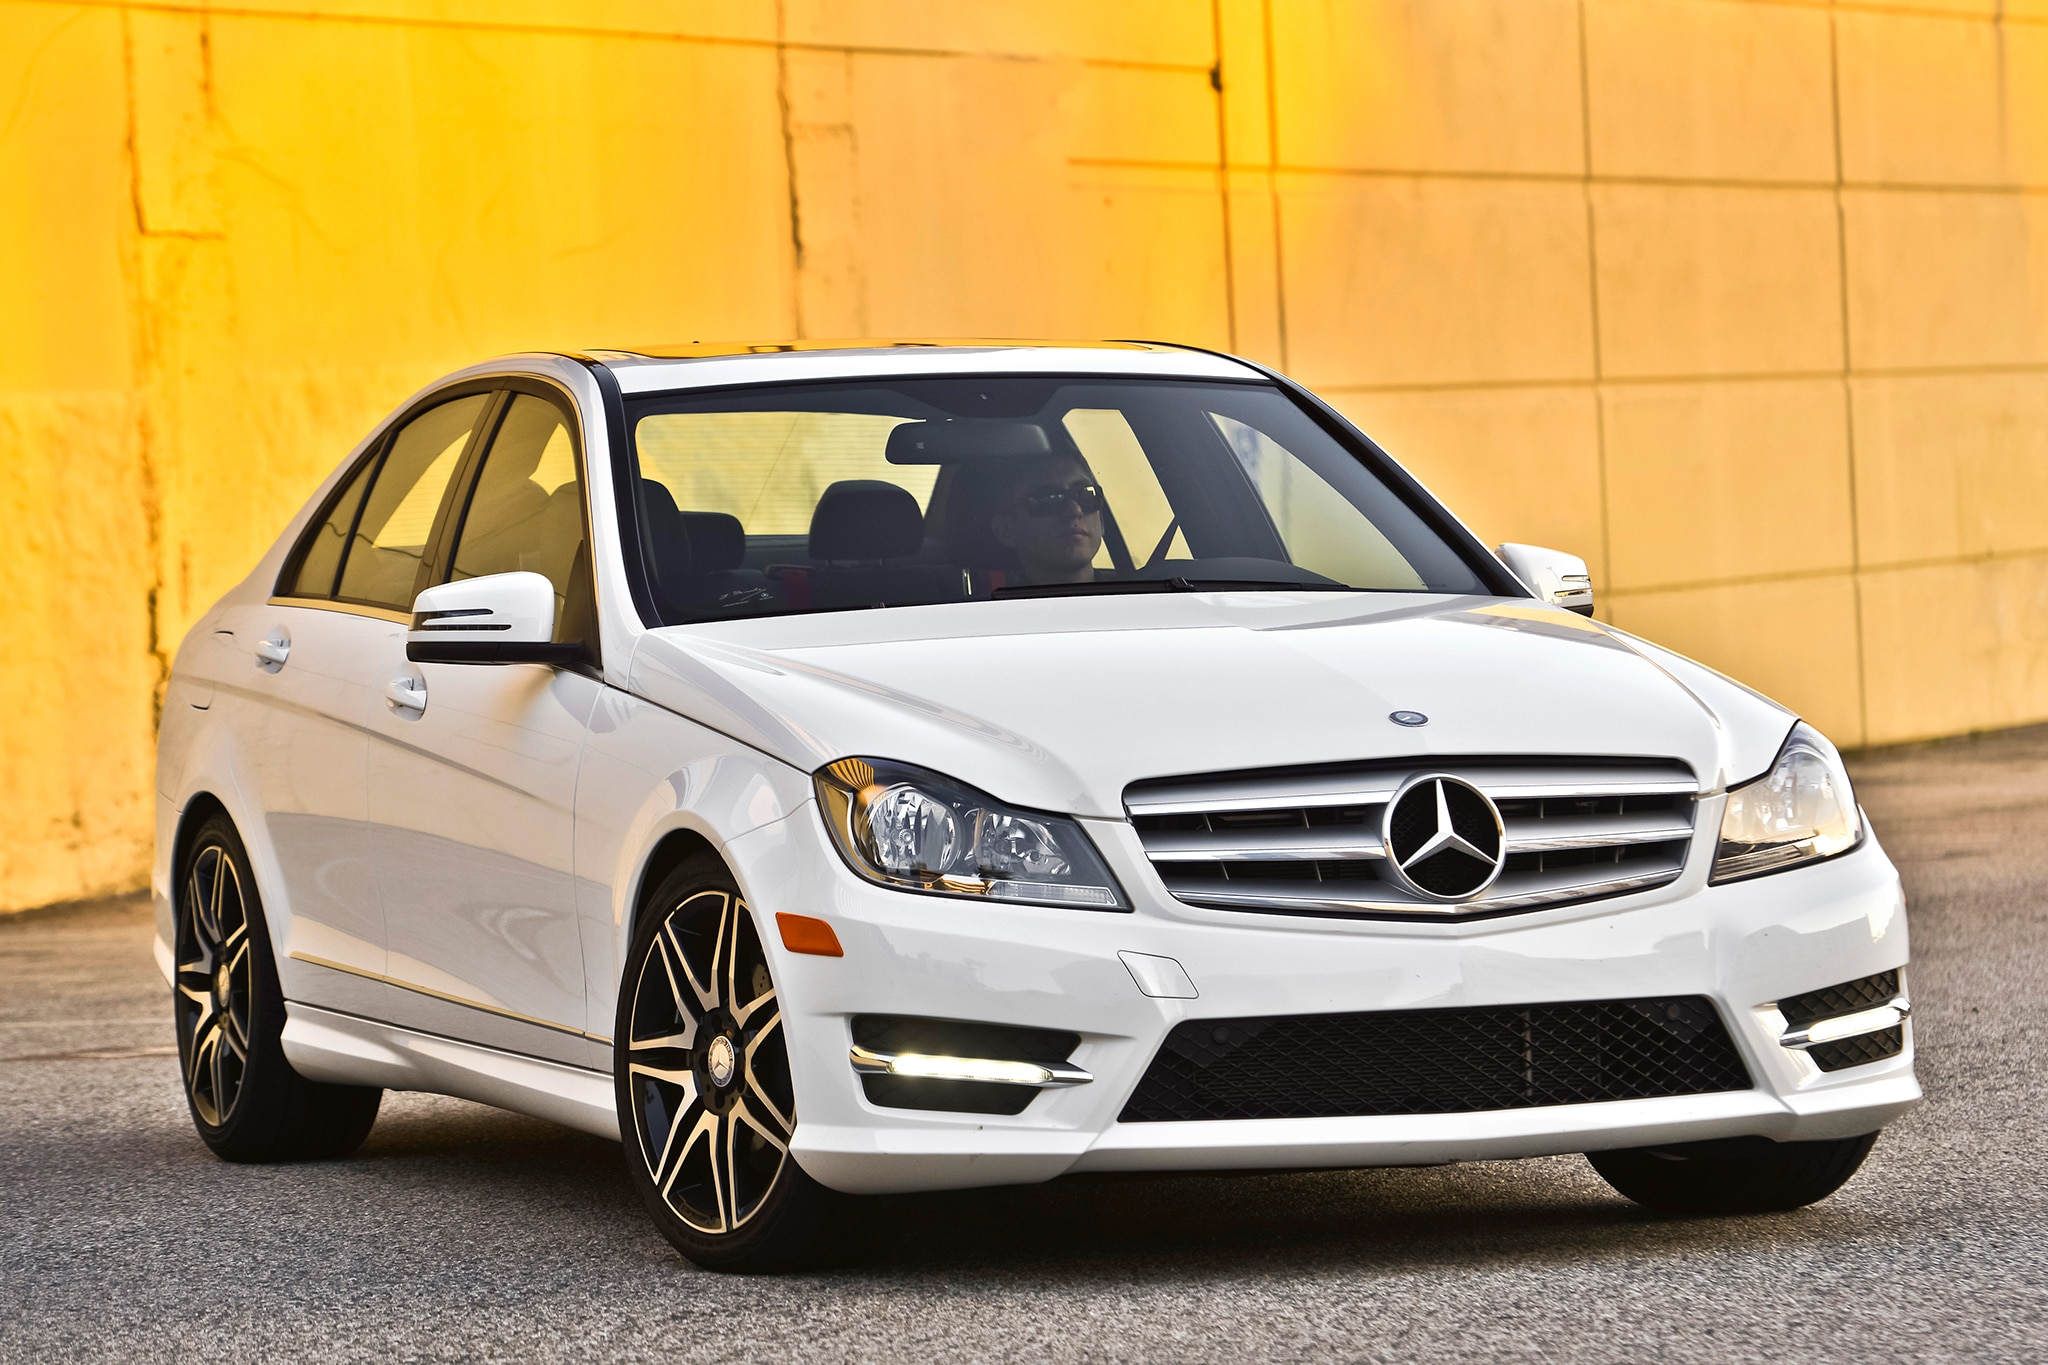 2013 mercedes benz c300 4matic gains power economy m For2013 Mercedes Benz C300